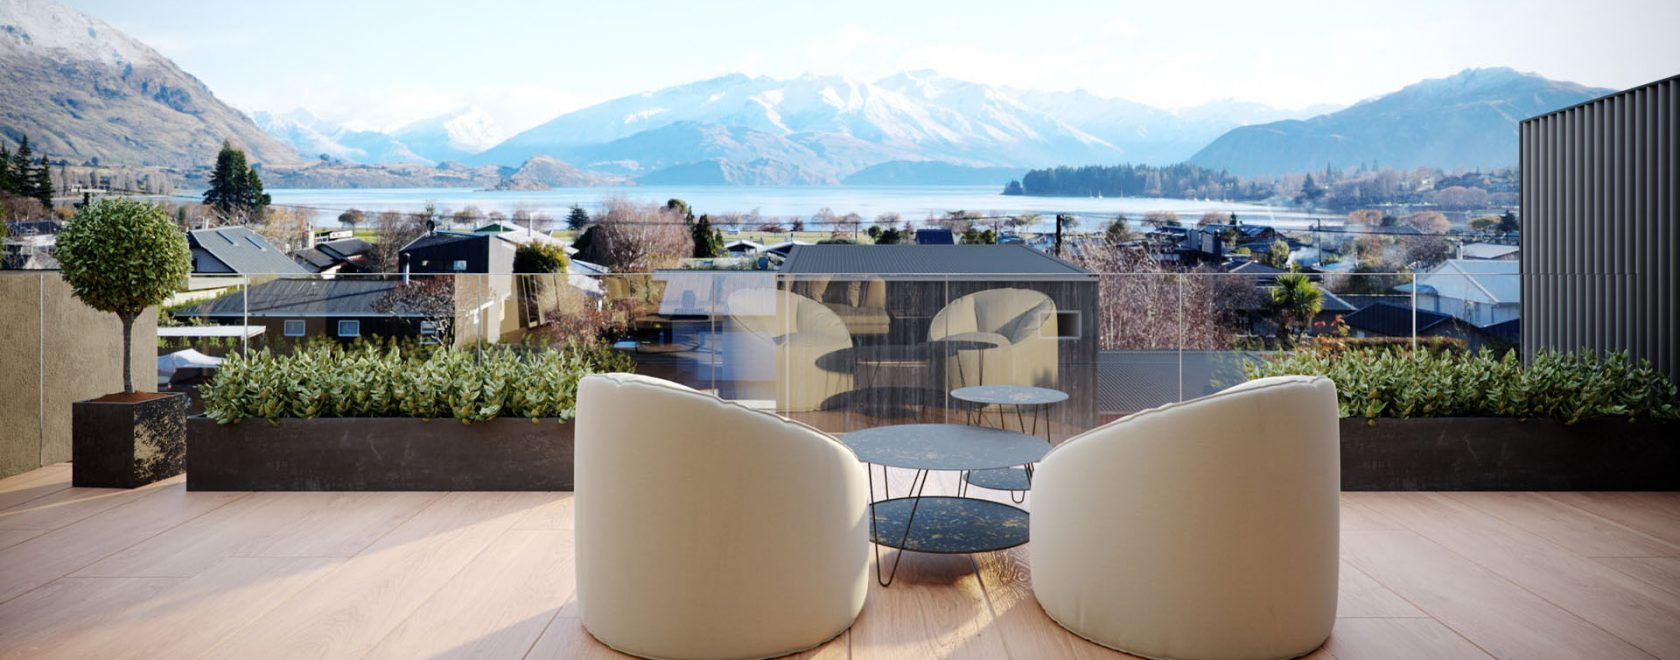 Render showing the scenic views from the top deck in Townhouses 2 & 3.